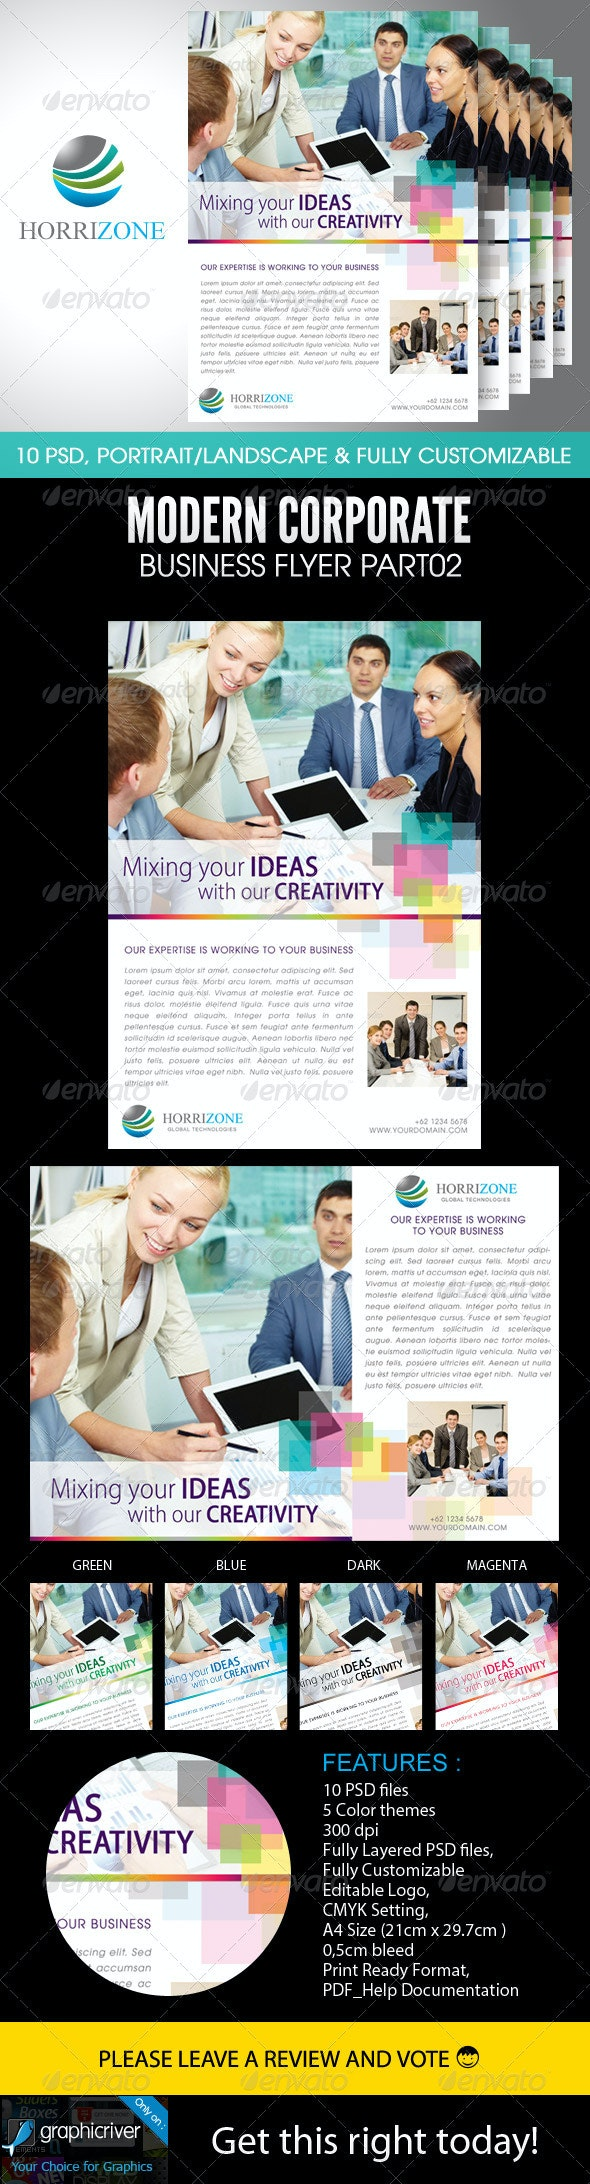 Modern Corporate Business Flyer Part02 - Corporate Flyers